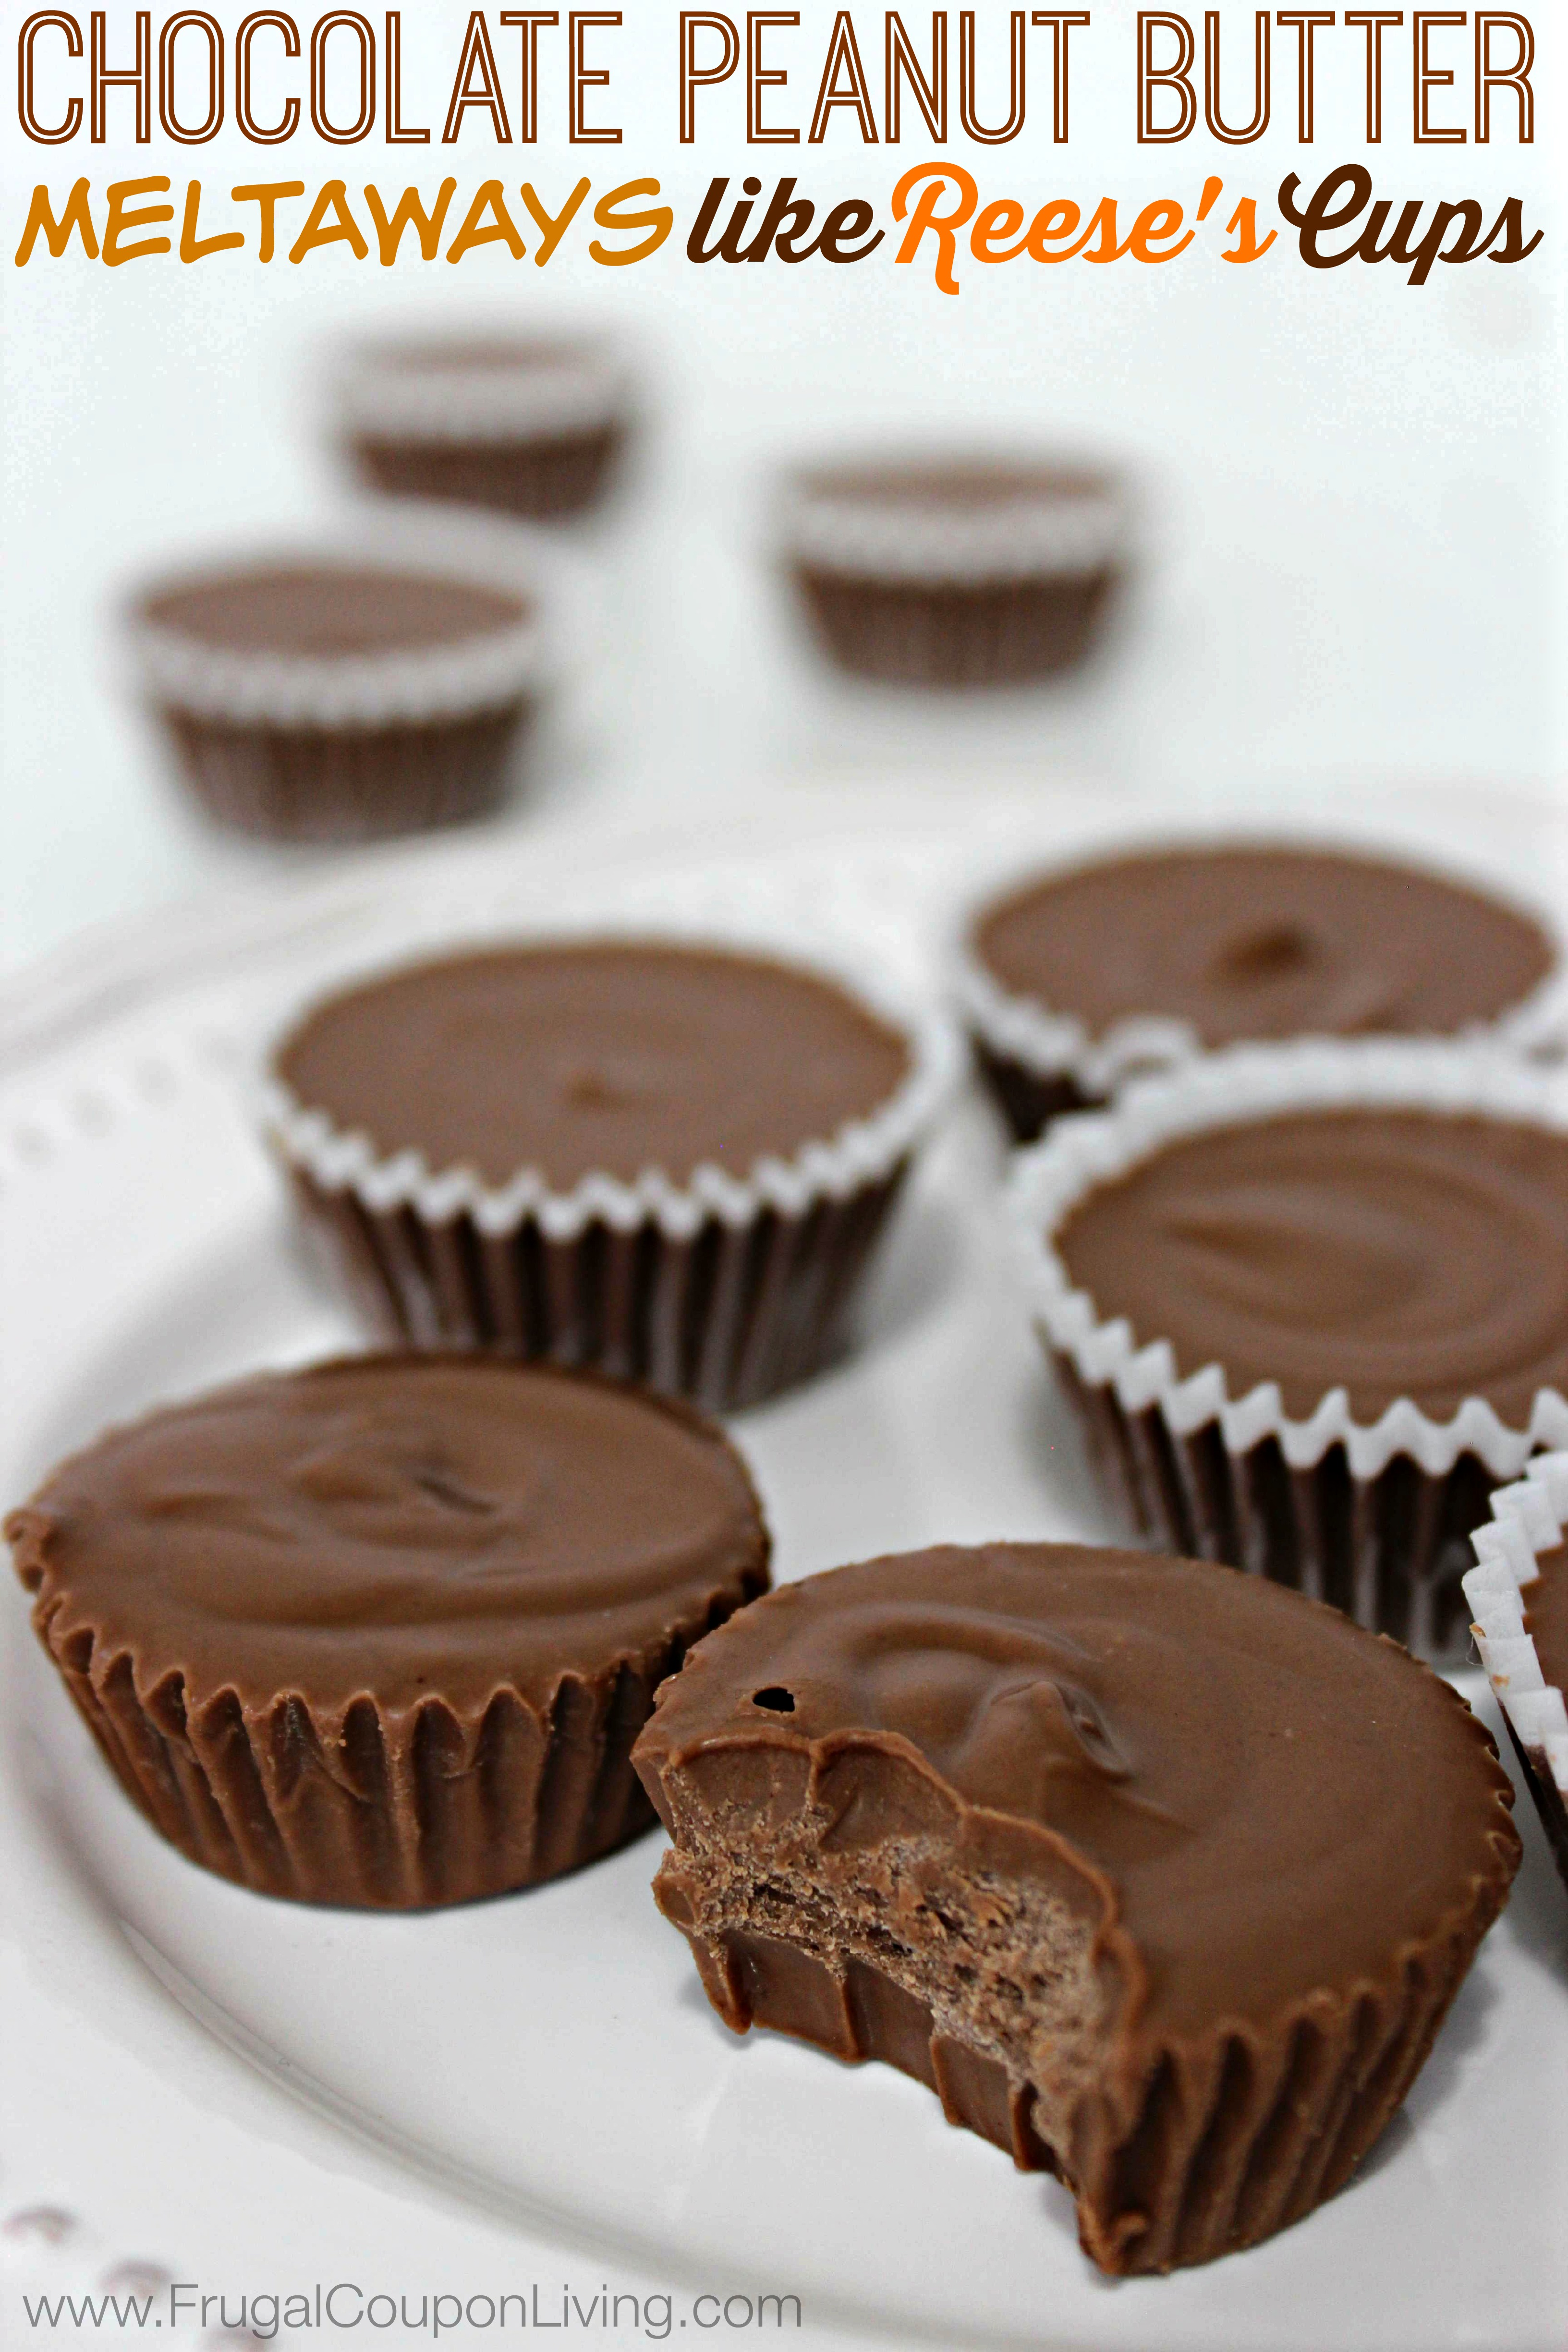 chocolate-peanut-buttter-meltaways-reeses-frugal-coupon-living